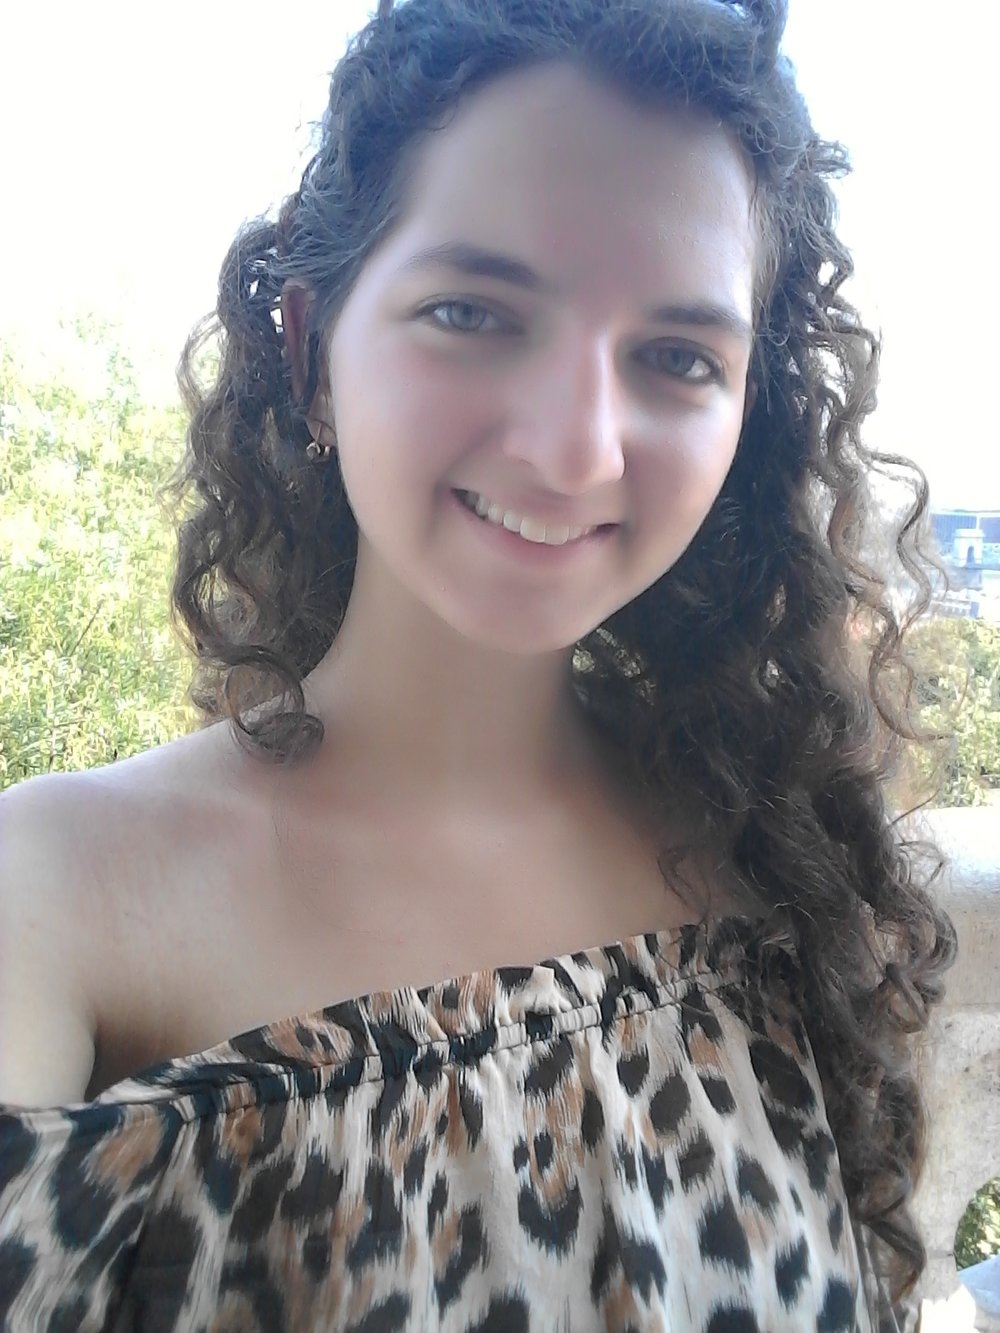 - My name is Yelena and I am a senior vocal major. I enjoy reading, writing, finding new music to listen to, traveling, playing with my dog, eating, and sleeping.Favorite Quote: